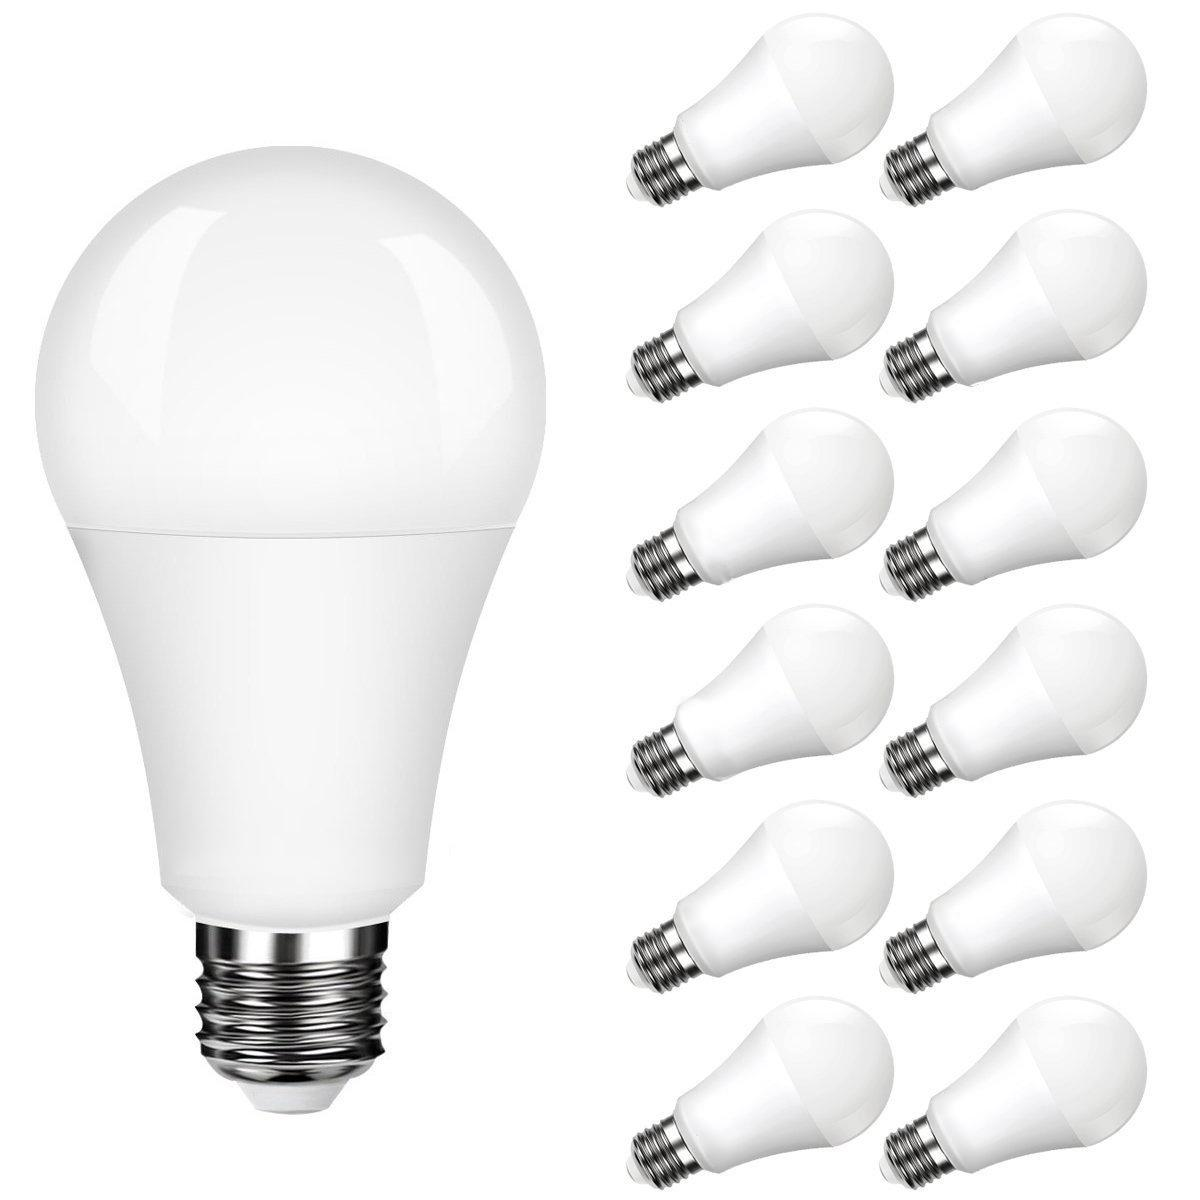 LumiParty 12 Pcs E26/27 LED Bulb Light A19 11W Incandescent Energy Saving Bulb for Kitchens Living Rooms Bedrooms or Hallways lumiparty 6pcs led light bulb 7w daylight white 3000k led energy saving light bulbs